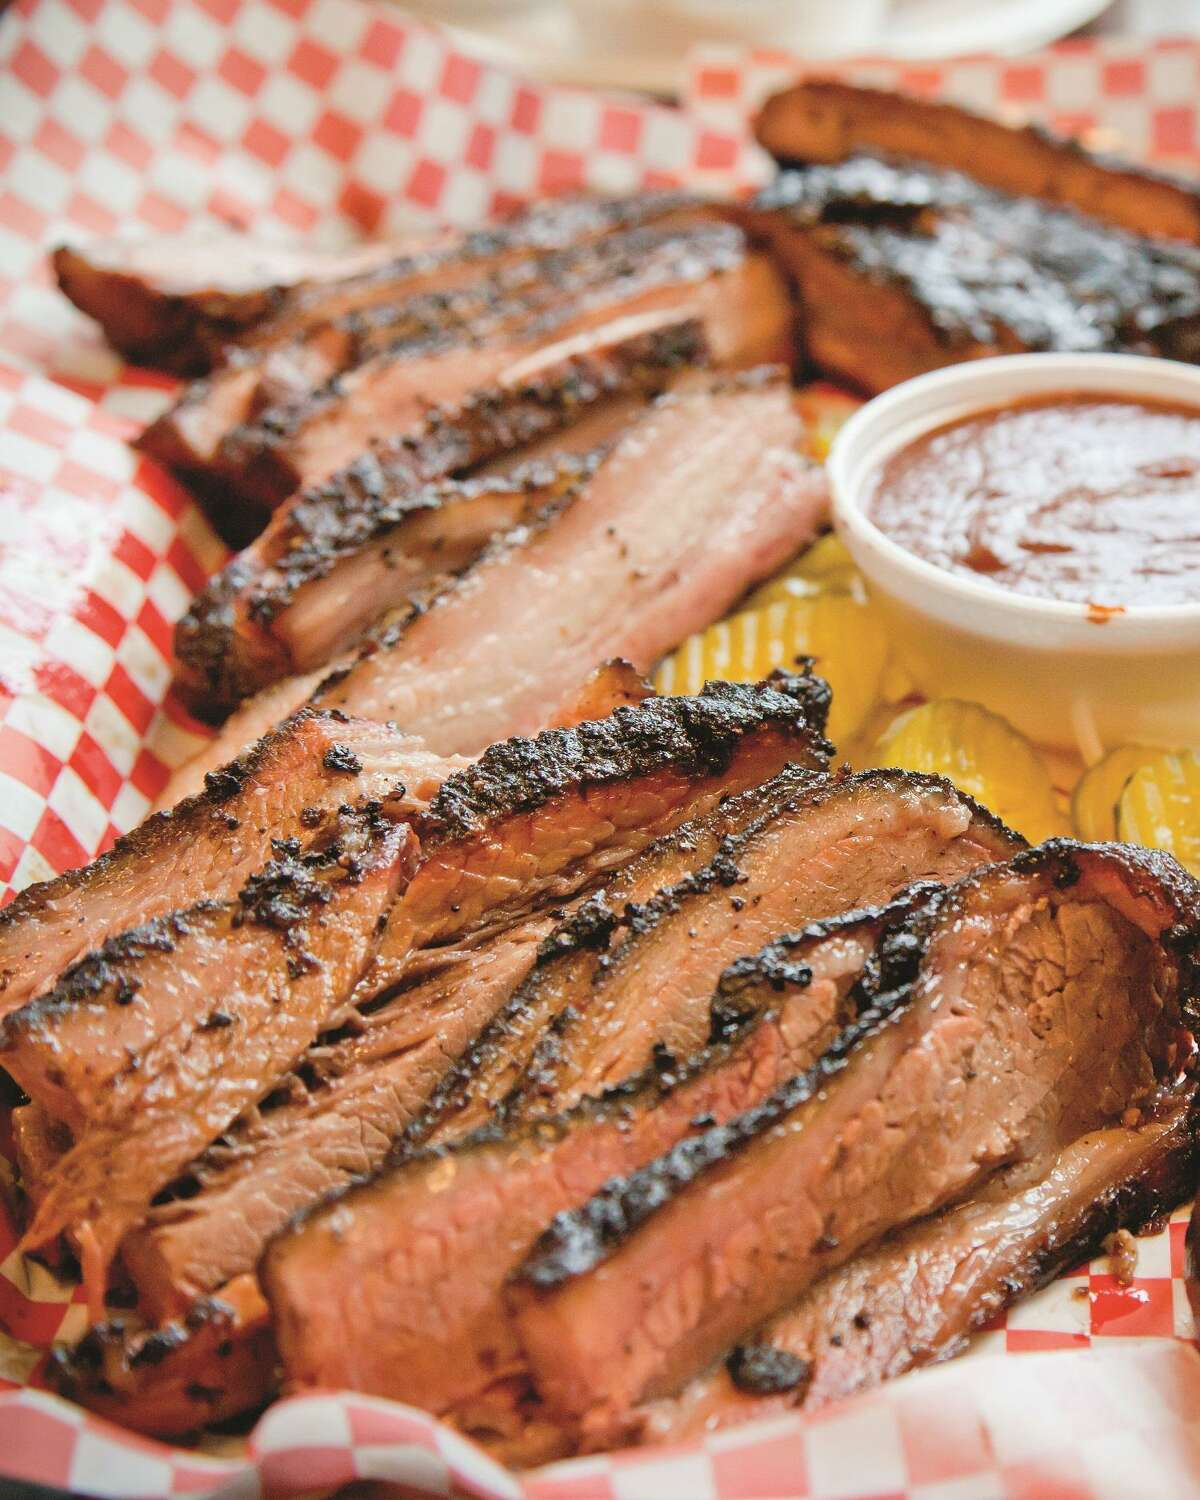 When in Montreal, eat smoked meats.